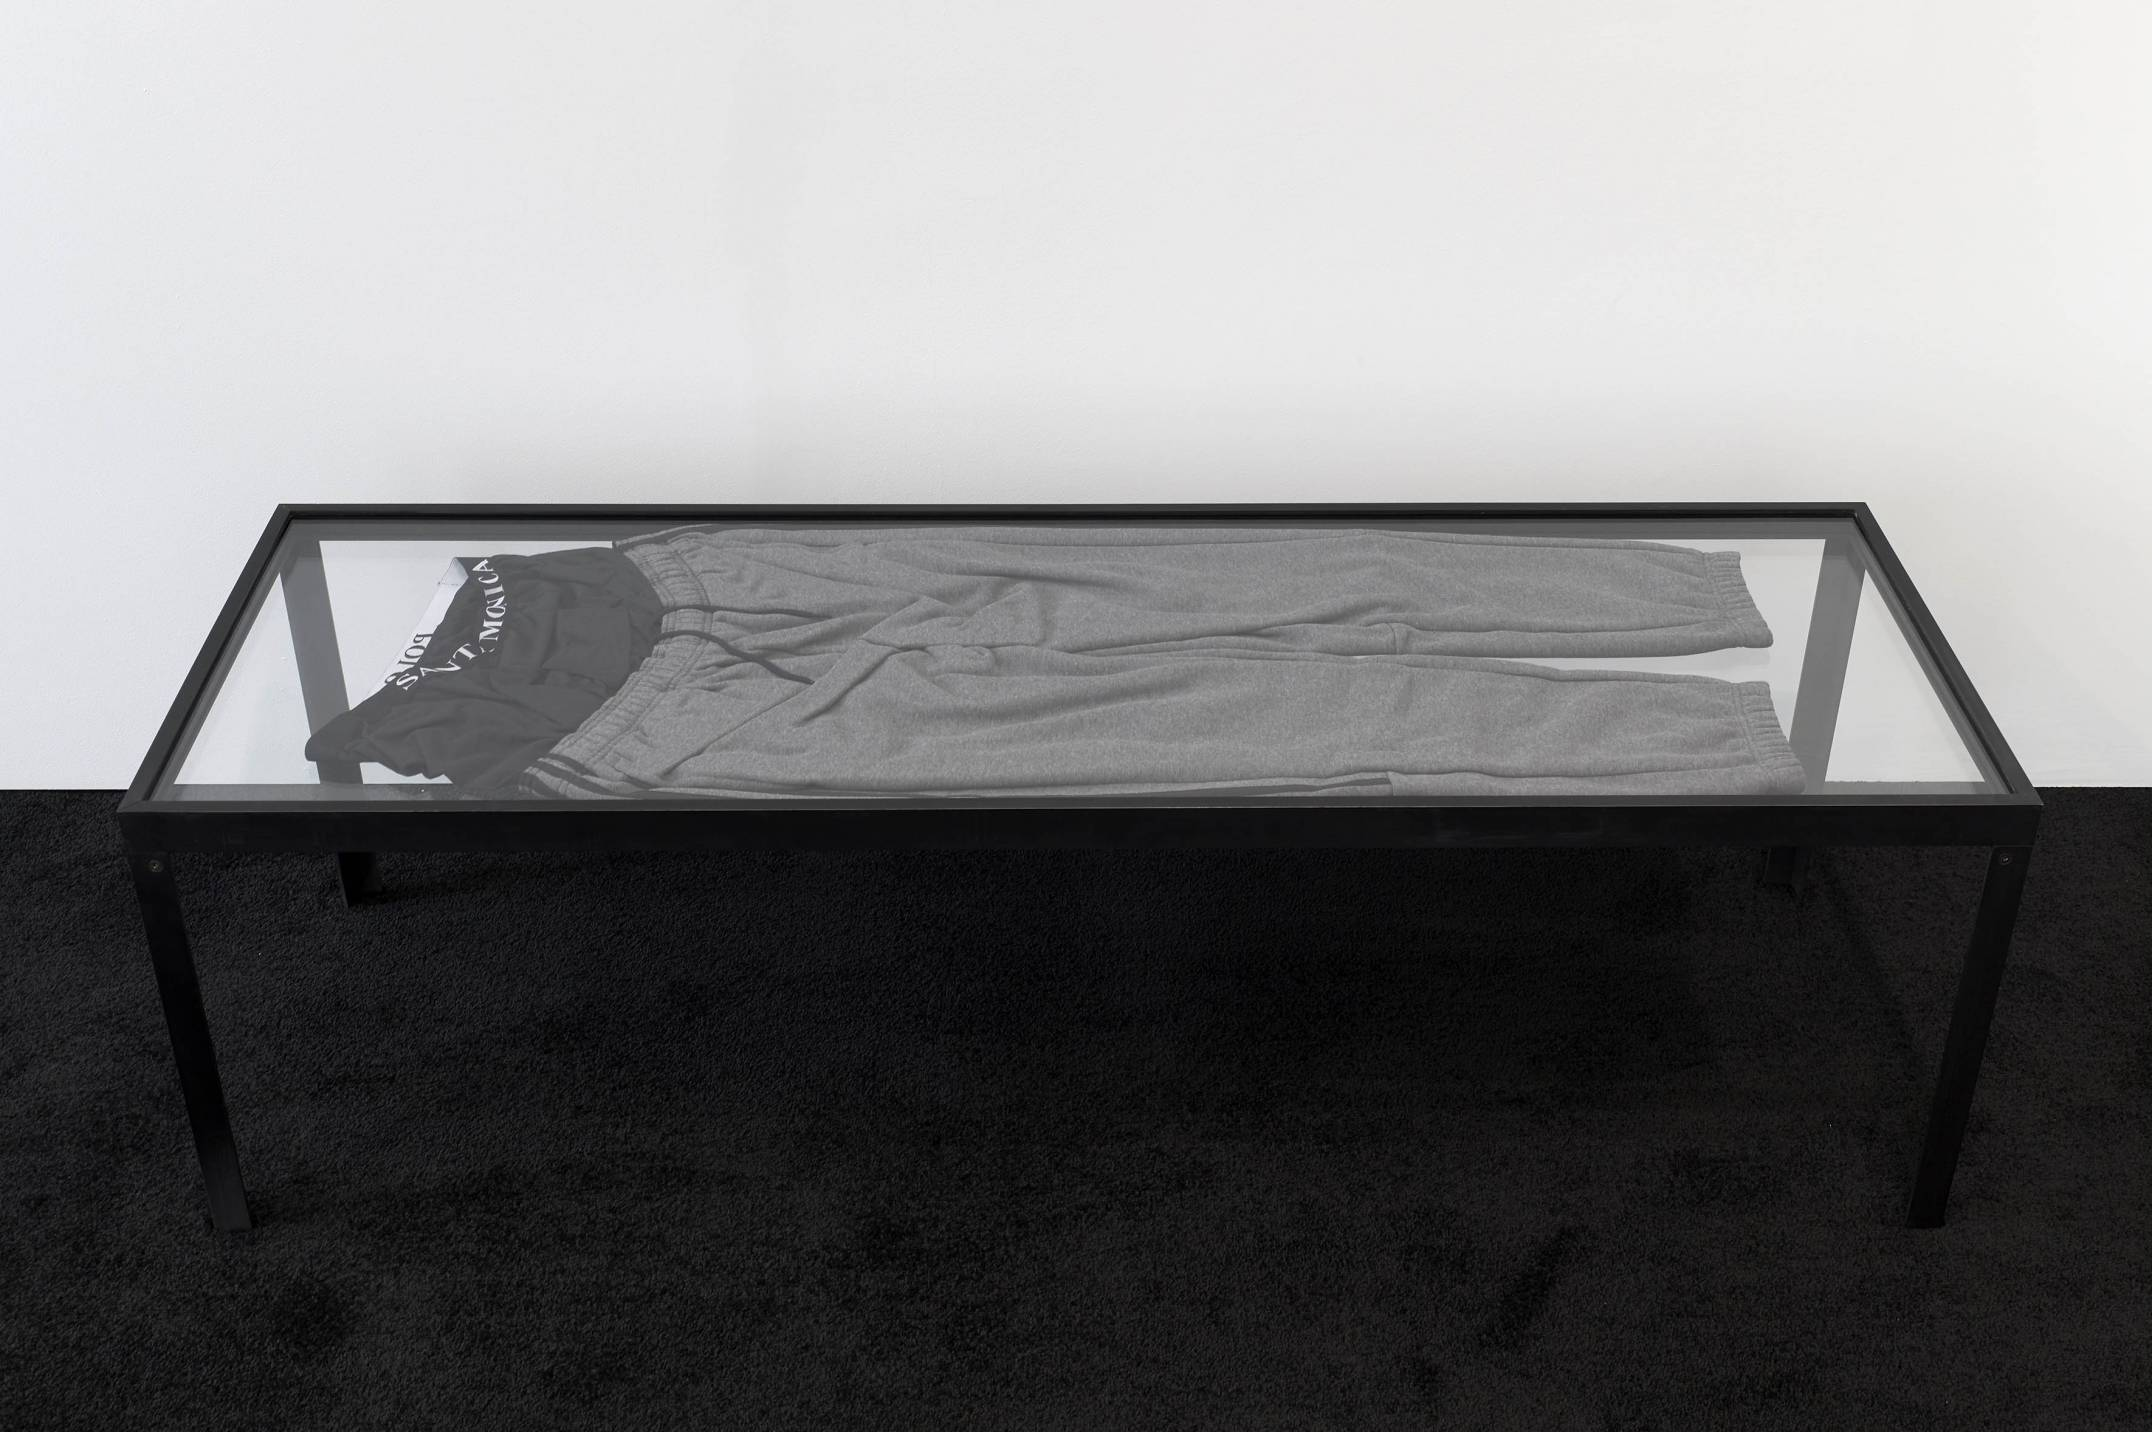 Prem Sahib,&nbsp;<em>Possession II</em>,&nbsp;2017,&nbsp;steel, glass, tracksuit bottoms, boxer shorts, 45 × 150 × 50 cm - Mendes Wood DM